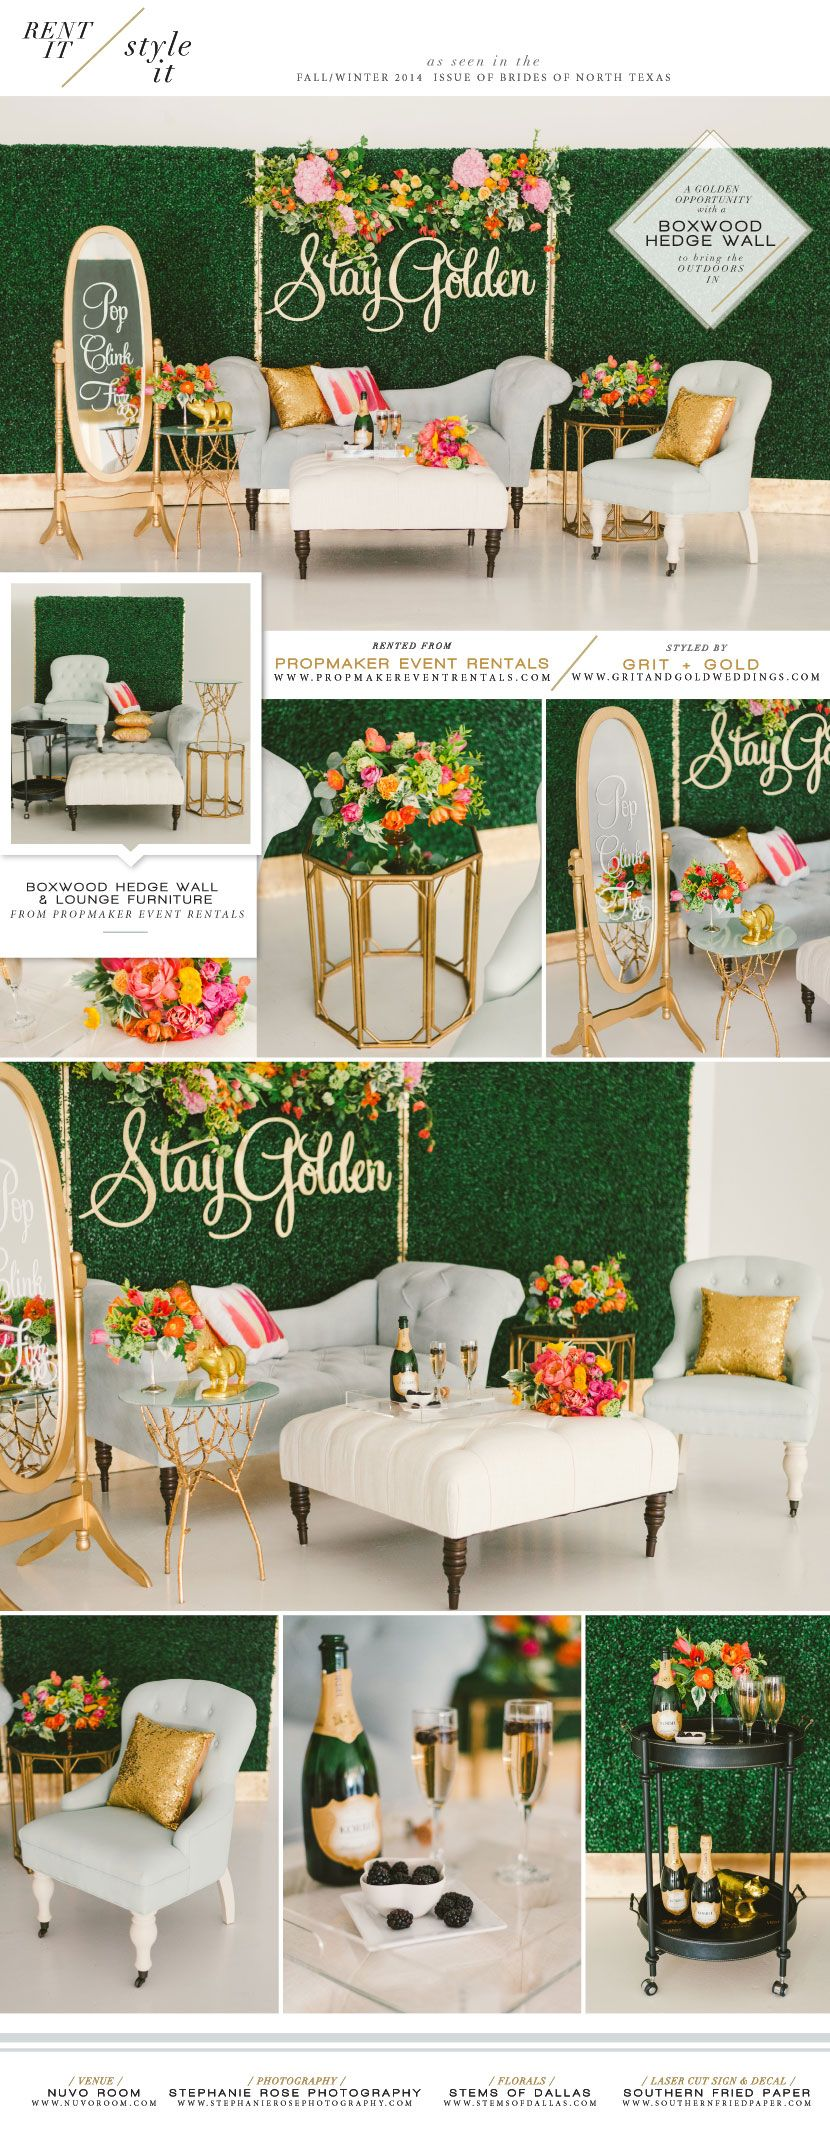 Zebra wedding decorations  Quirky and modern reception lounge decor from Propmaker Event